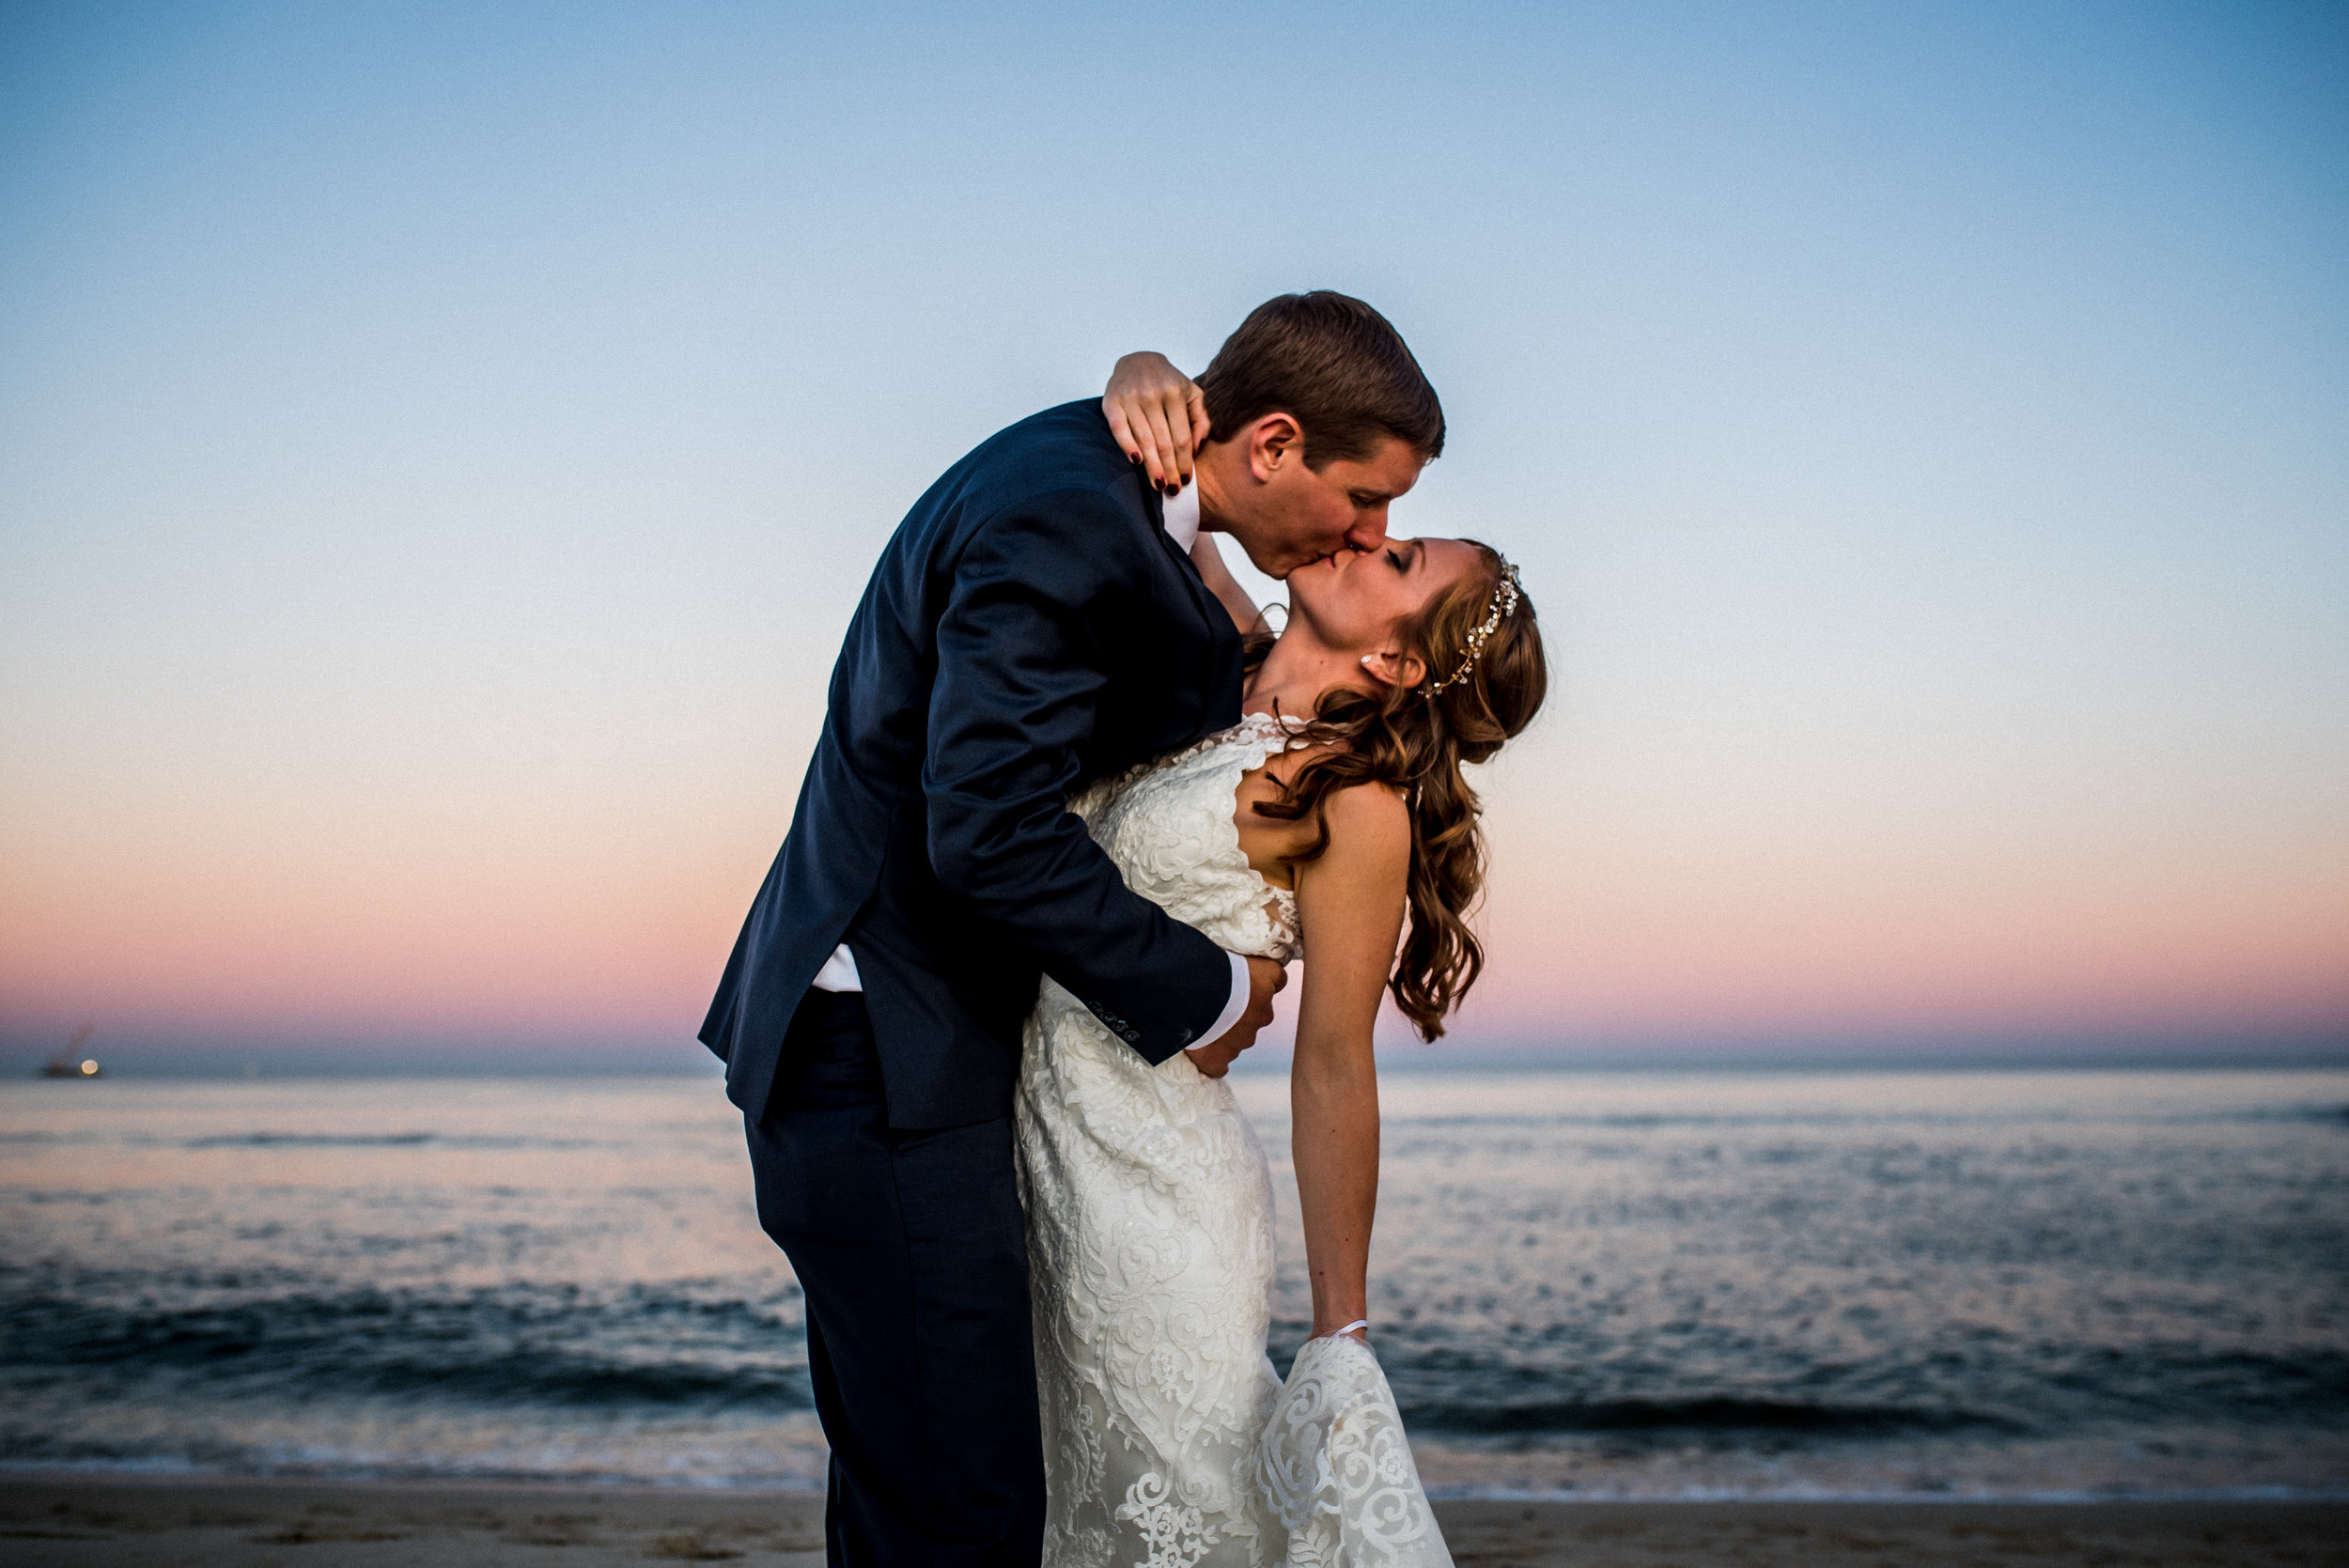 NJ PHOTOGRAPHER | SPRING LAKE PHOTOGRAPHER | SOUTH NJ JERSEY WEDDING PHOTOGRAPHER | THE KNOT | WEDDING WIRE | CENTRAL JERSEY WEDDING PHOTOGRAPHER | NORTH NJ JERSEY WEDDING PHOTOGRAPHER | FARM WEDDINGS